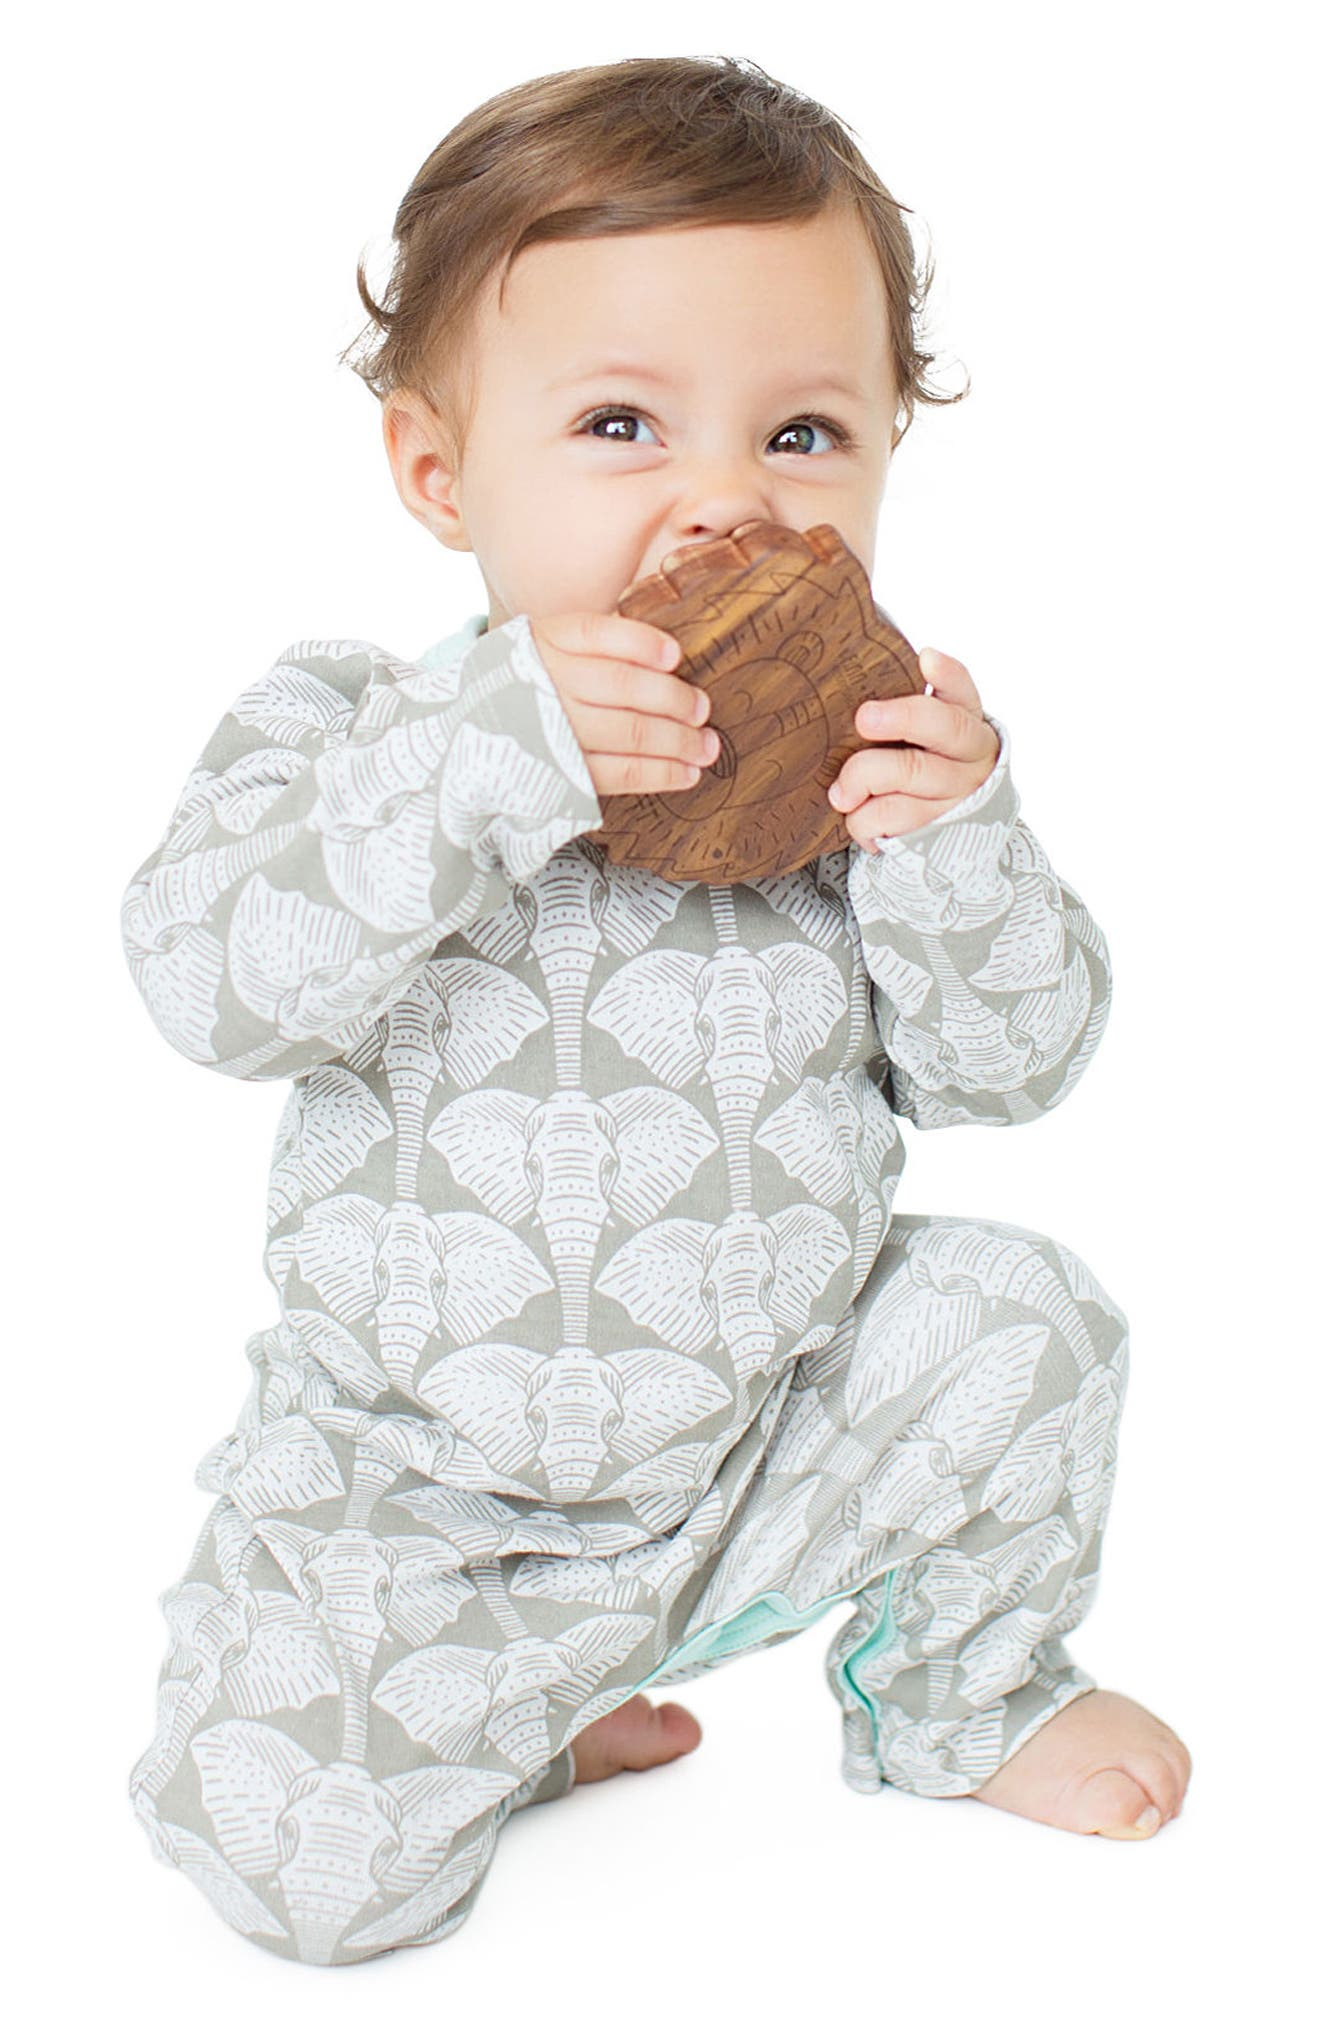 Organic Cotton Bodysuit, Hardwood Teething Ring & Rattle Set,                             Alternate thumbnail 8, color,                             Safari